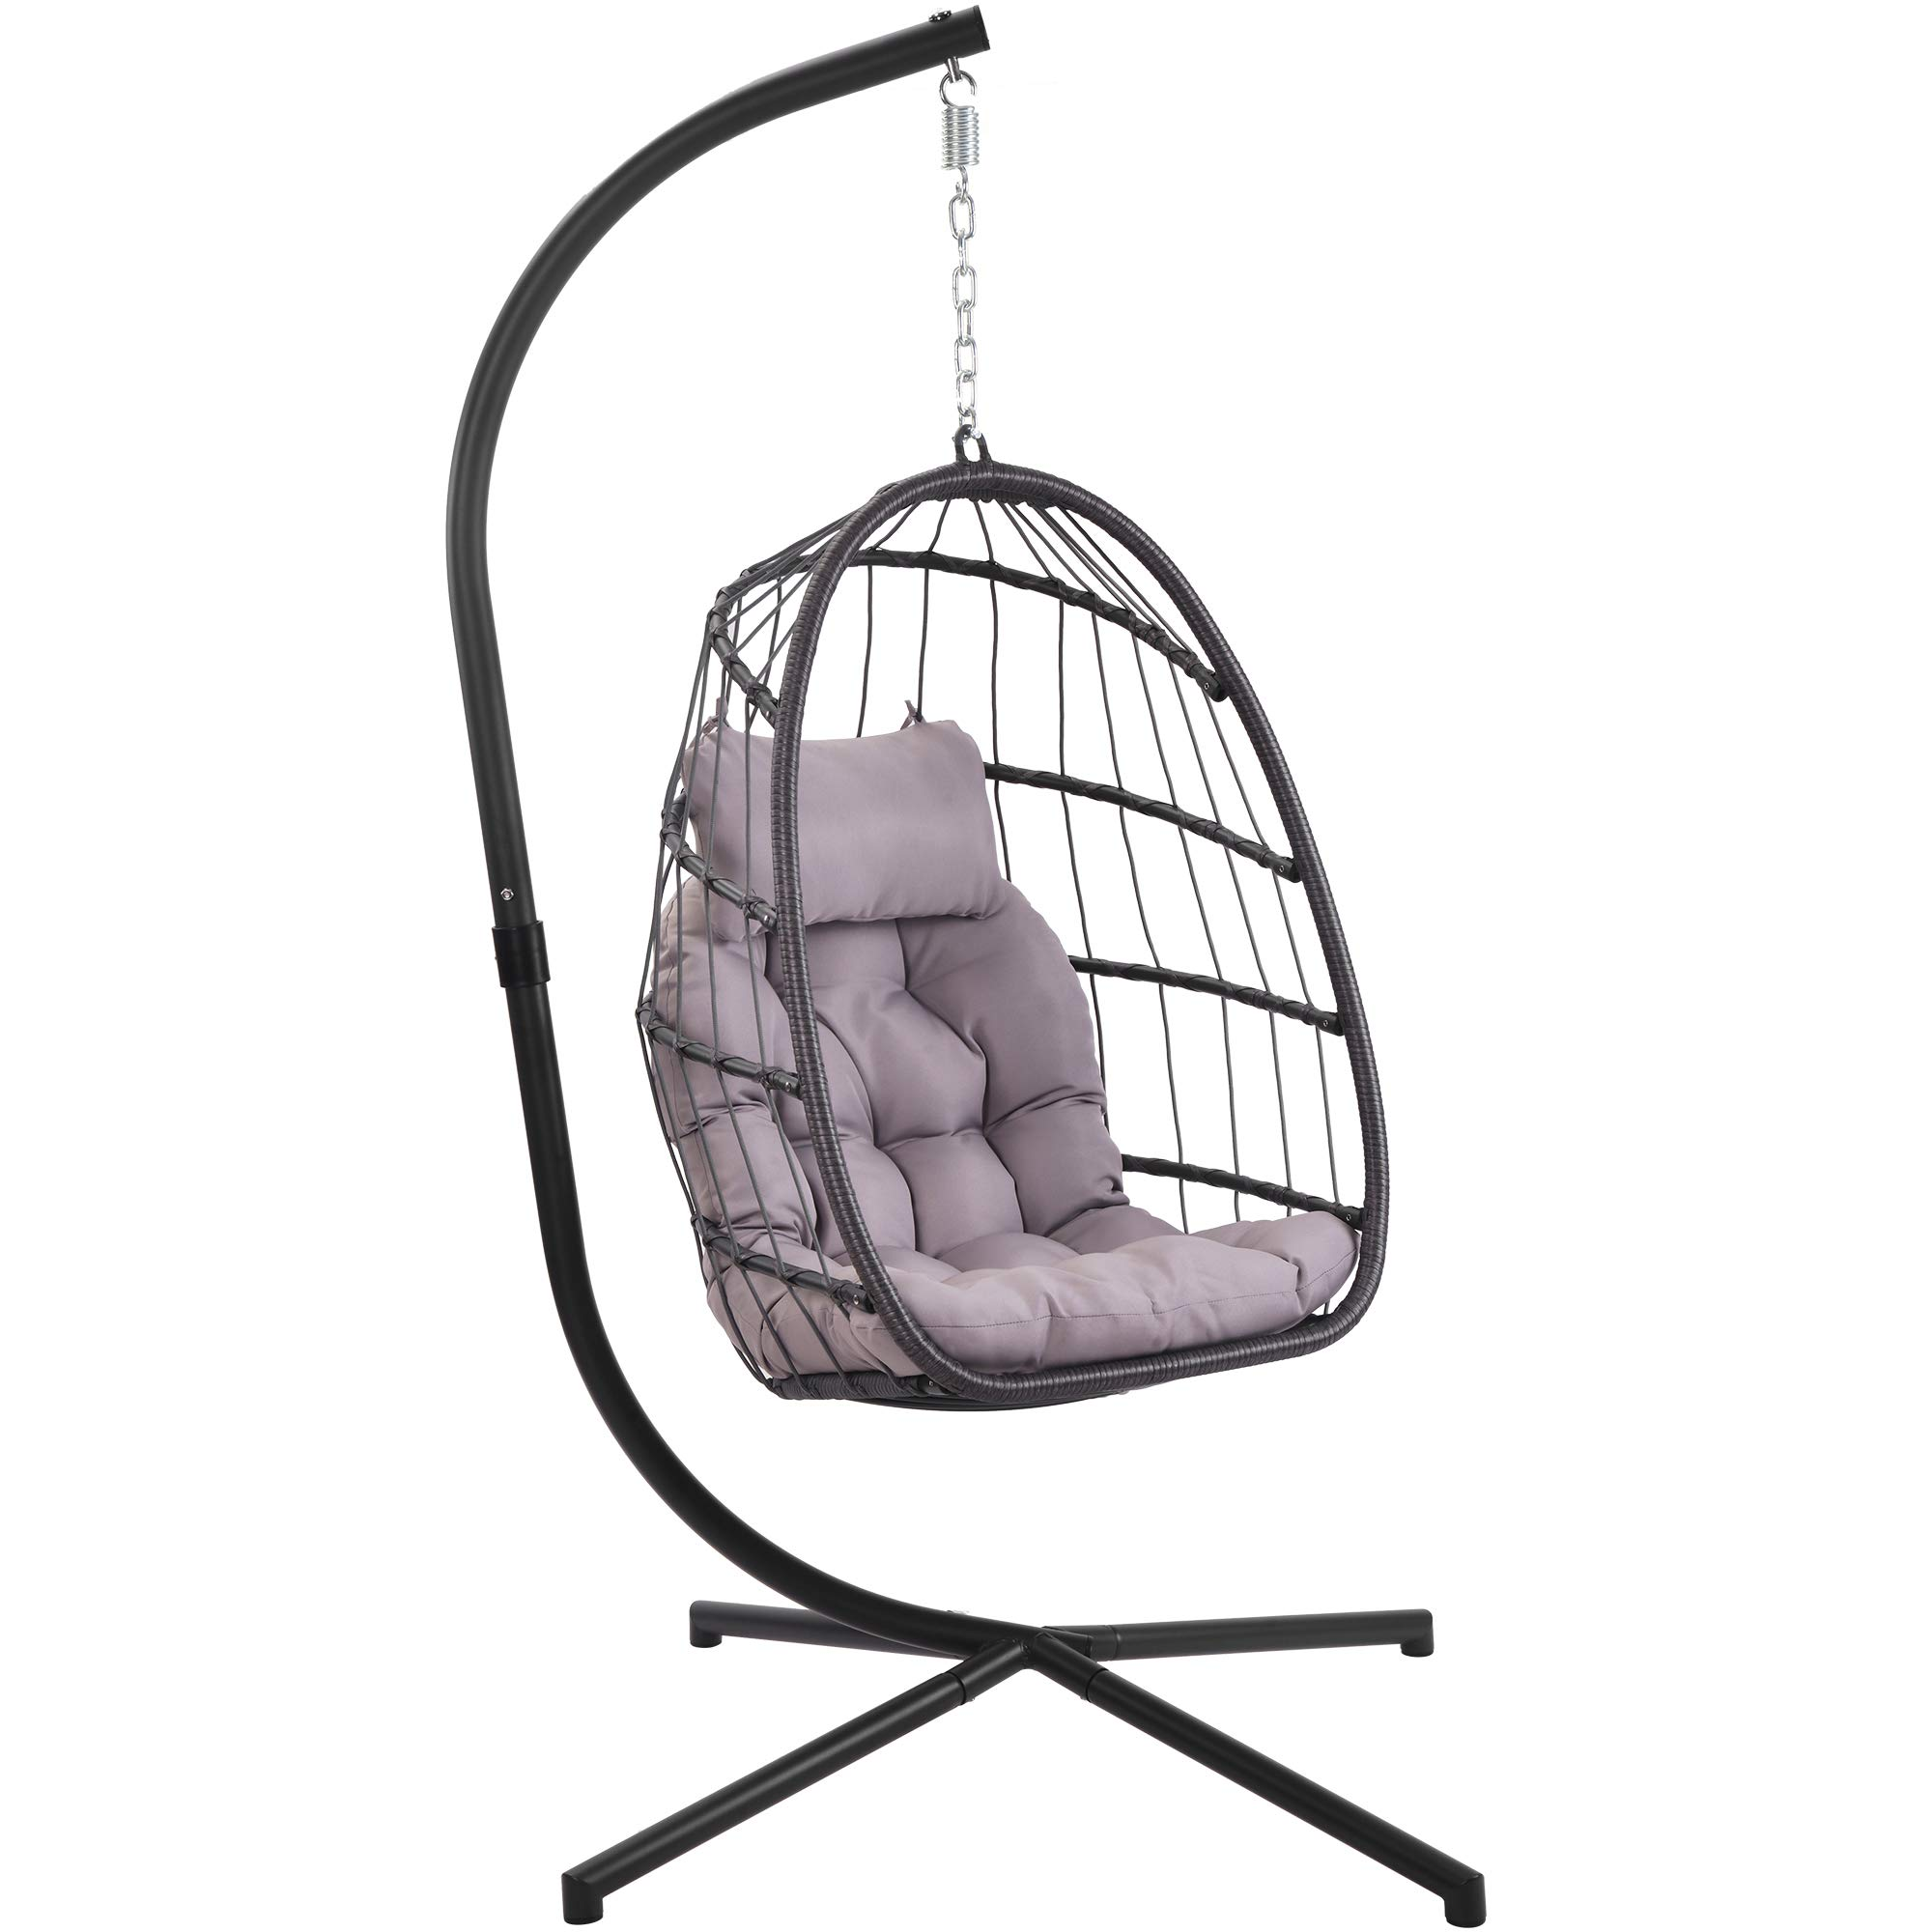 Patio Hanging Egg Chair With Stand Swing Chair Basket Swinging Chair Porch Chaise Lounge Chair Rattan Wicker Hammock Chair With Deep Cushion For Indoor Outdoor Home Bedroom Backyard Balcony Gray